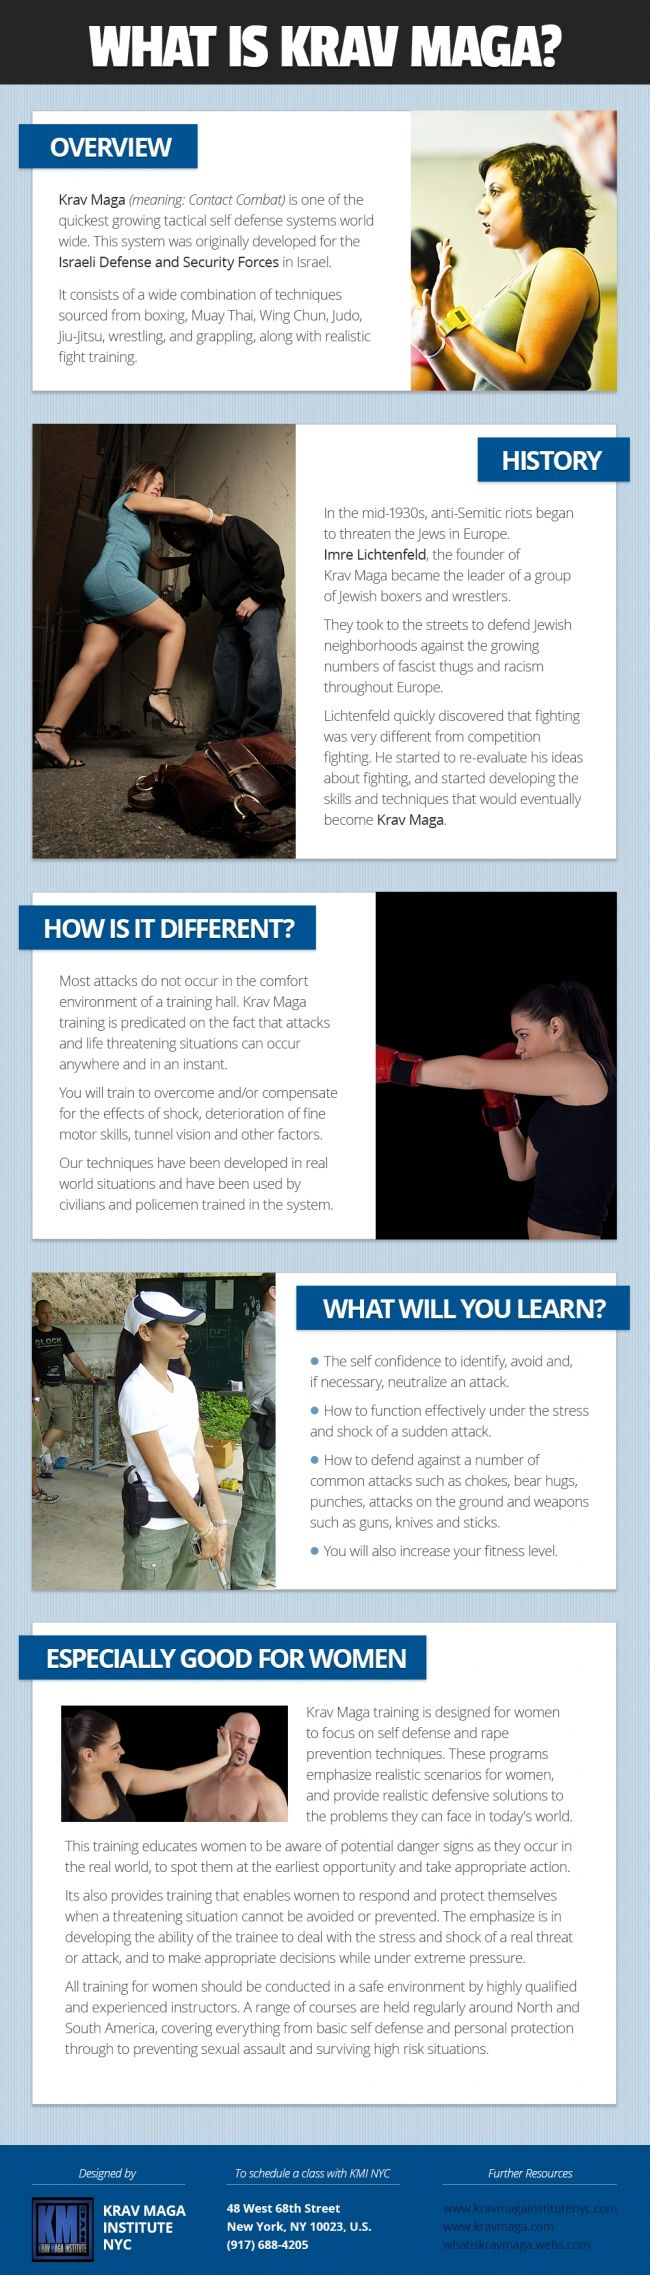 Mada Krav Maga in Shelby Township, MI teaches realistic hand to hand combat that uses the quickest methods to attack the weakest and most vital targets of both armed and unarmed assailants! Visit our website www.madakravmaga.com or call (586) 745-1171 for more details!